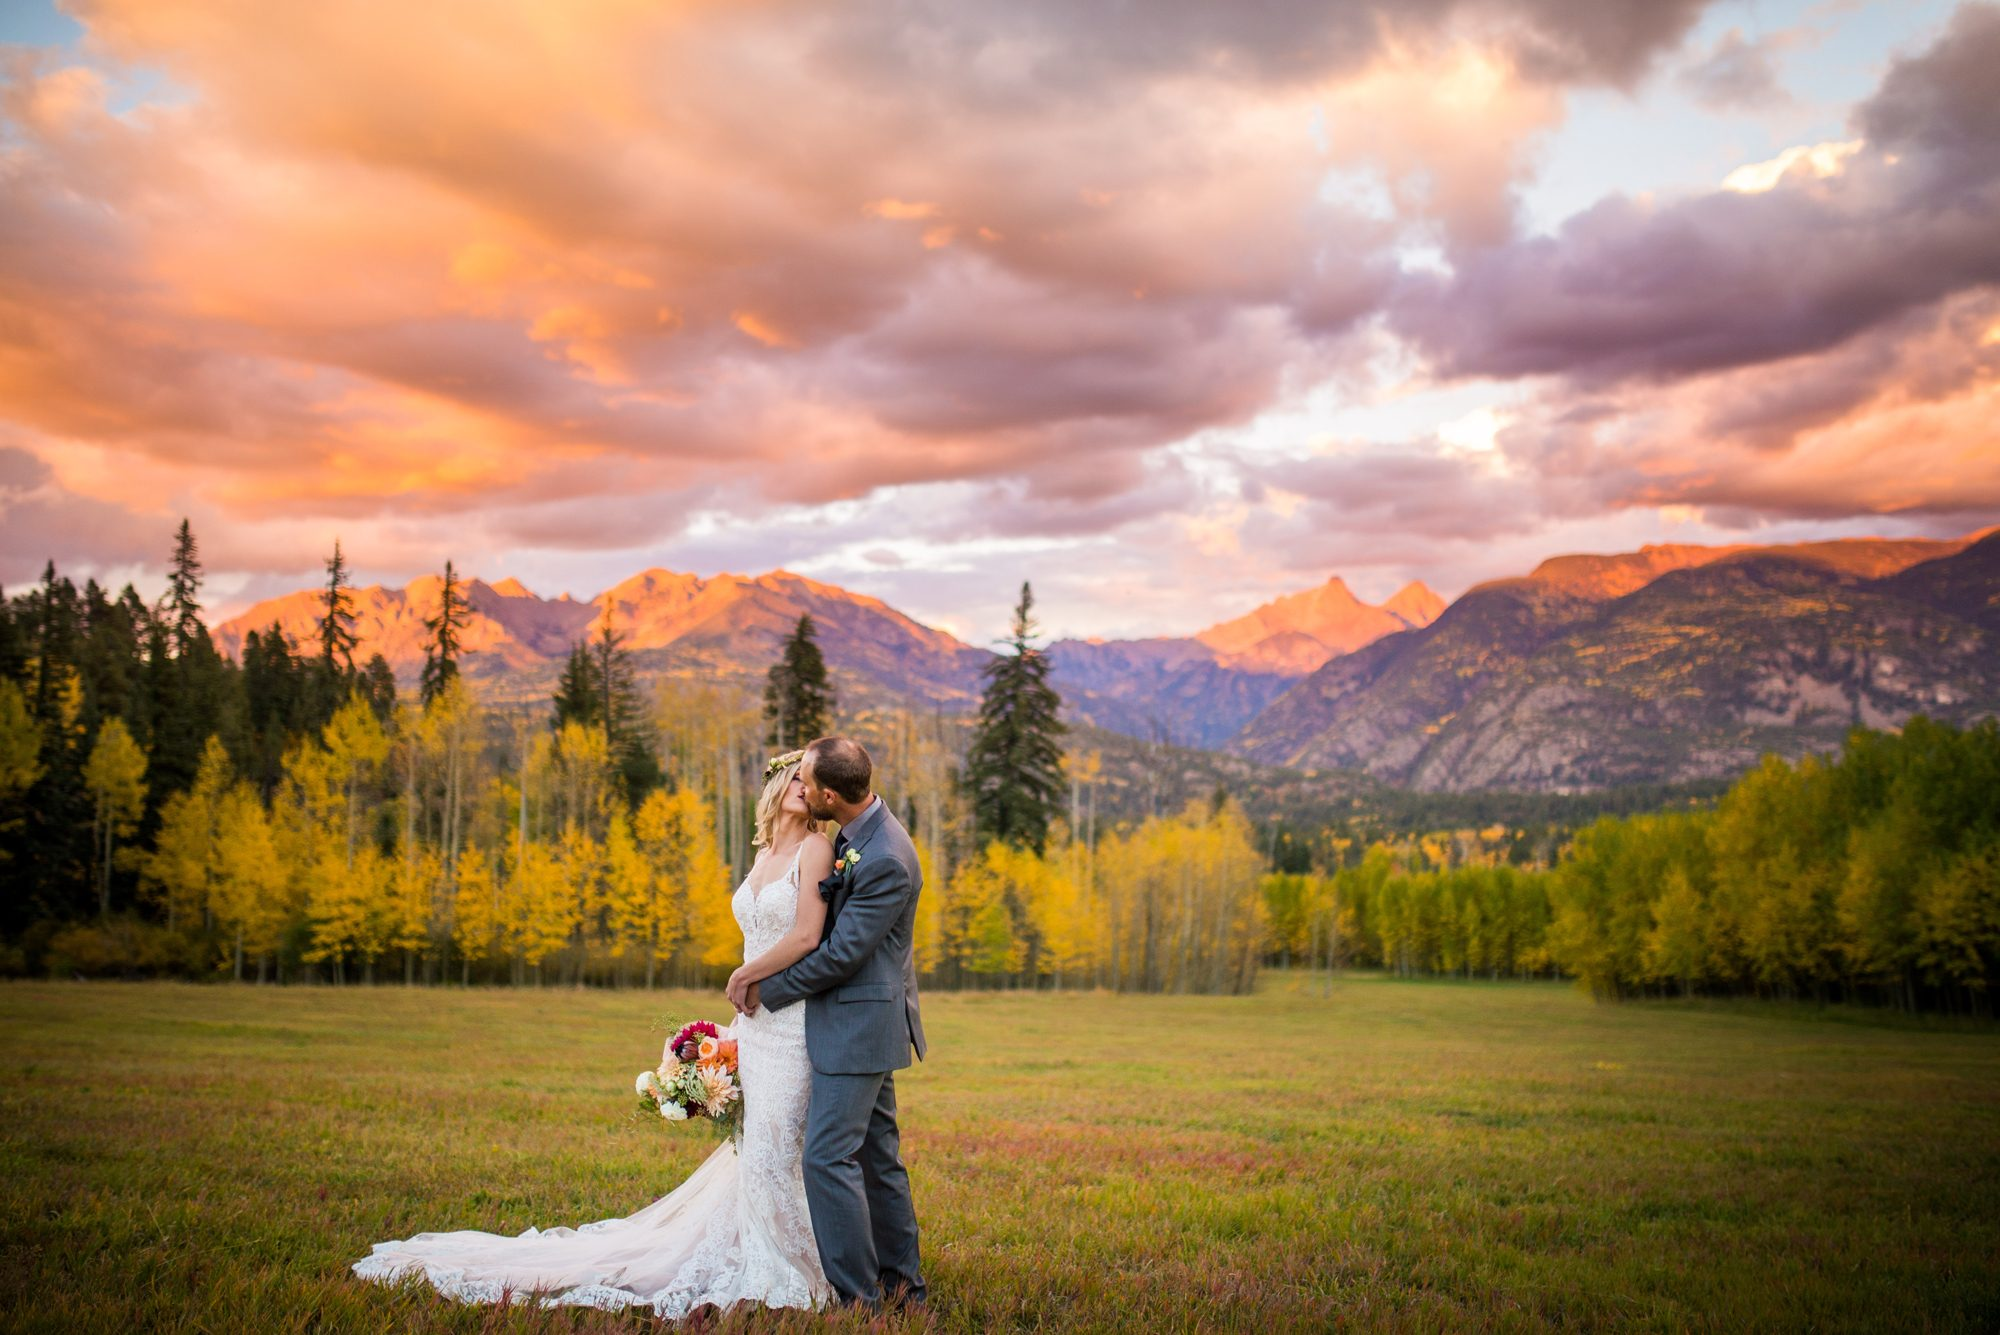 A Stunning Autumn Mountain Wedding in Durango, Colorado